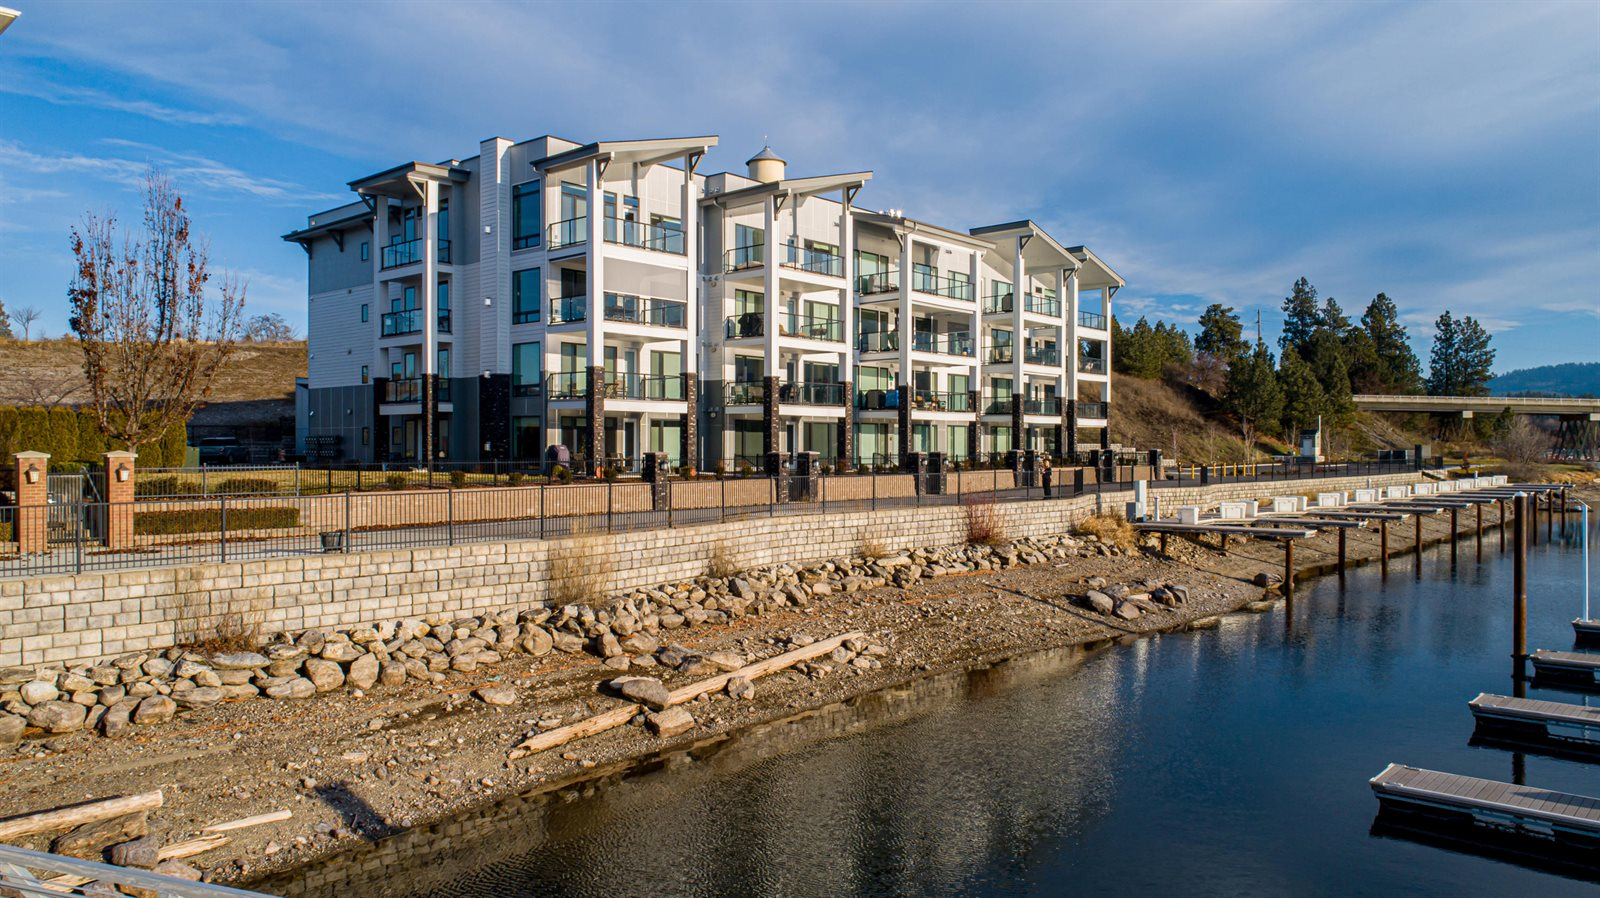 447 West Waterside Dr, #401, Post Falls, ID 83854